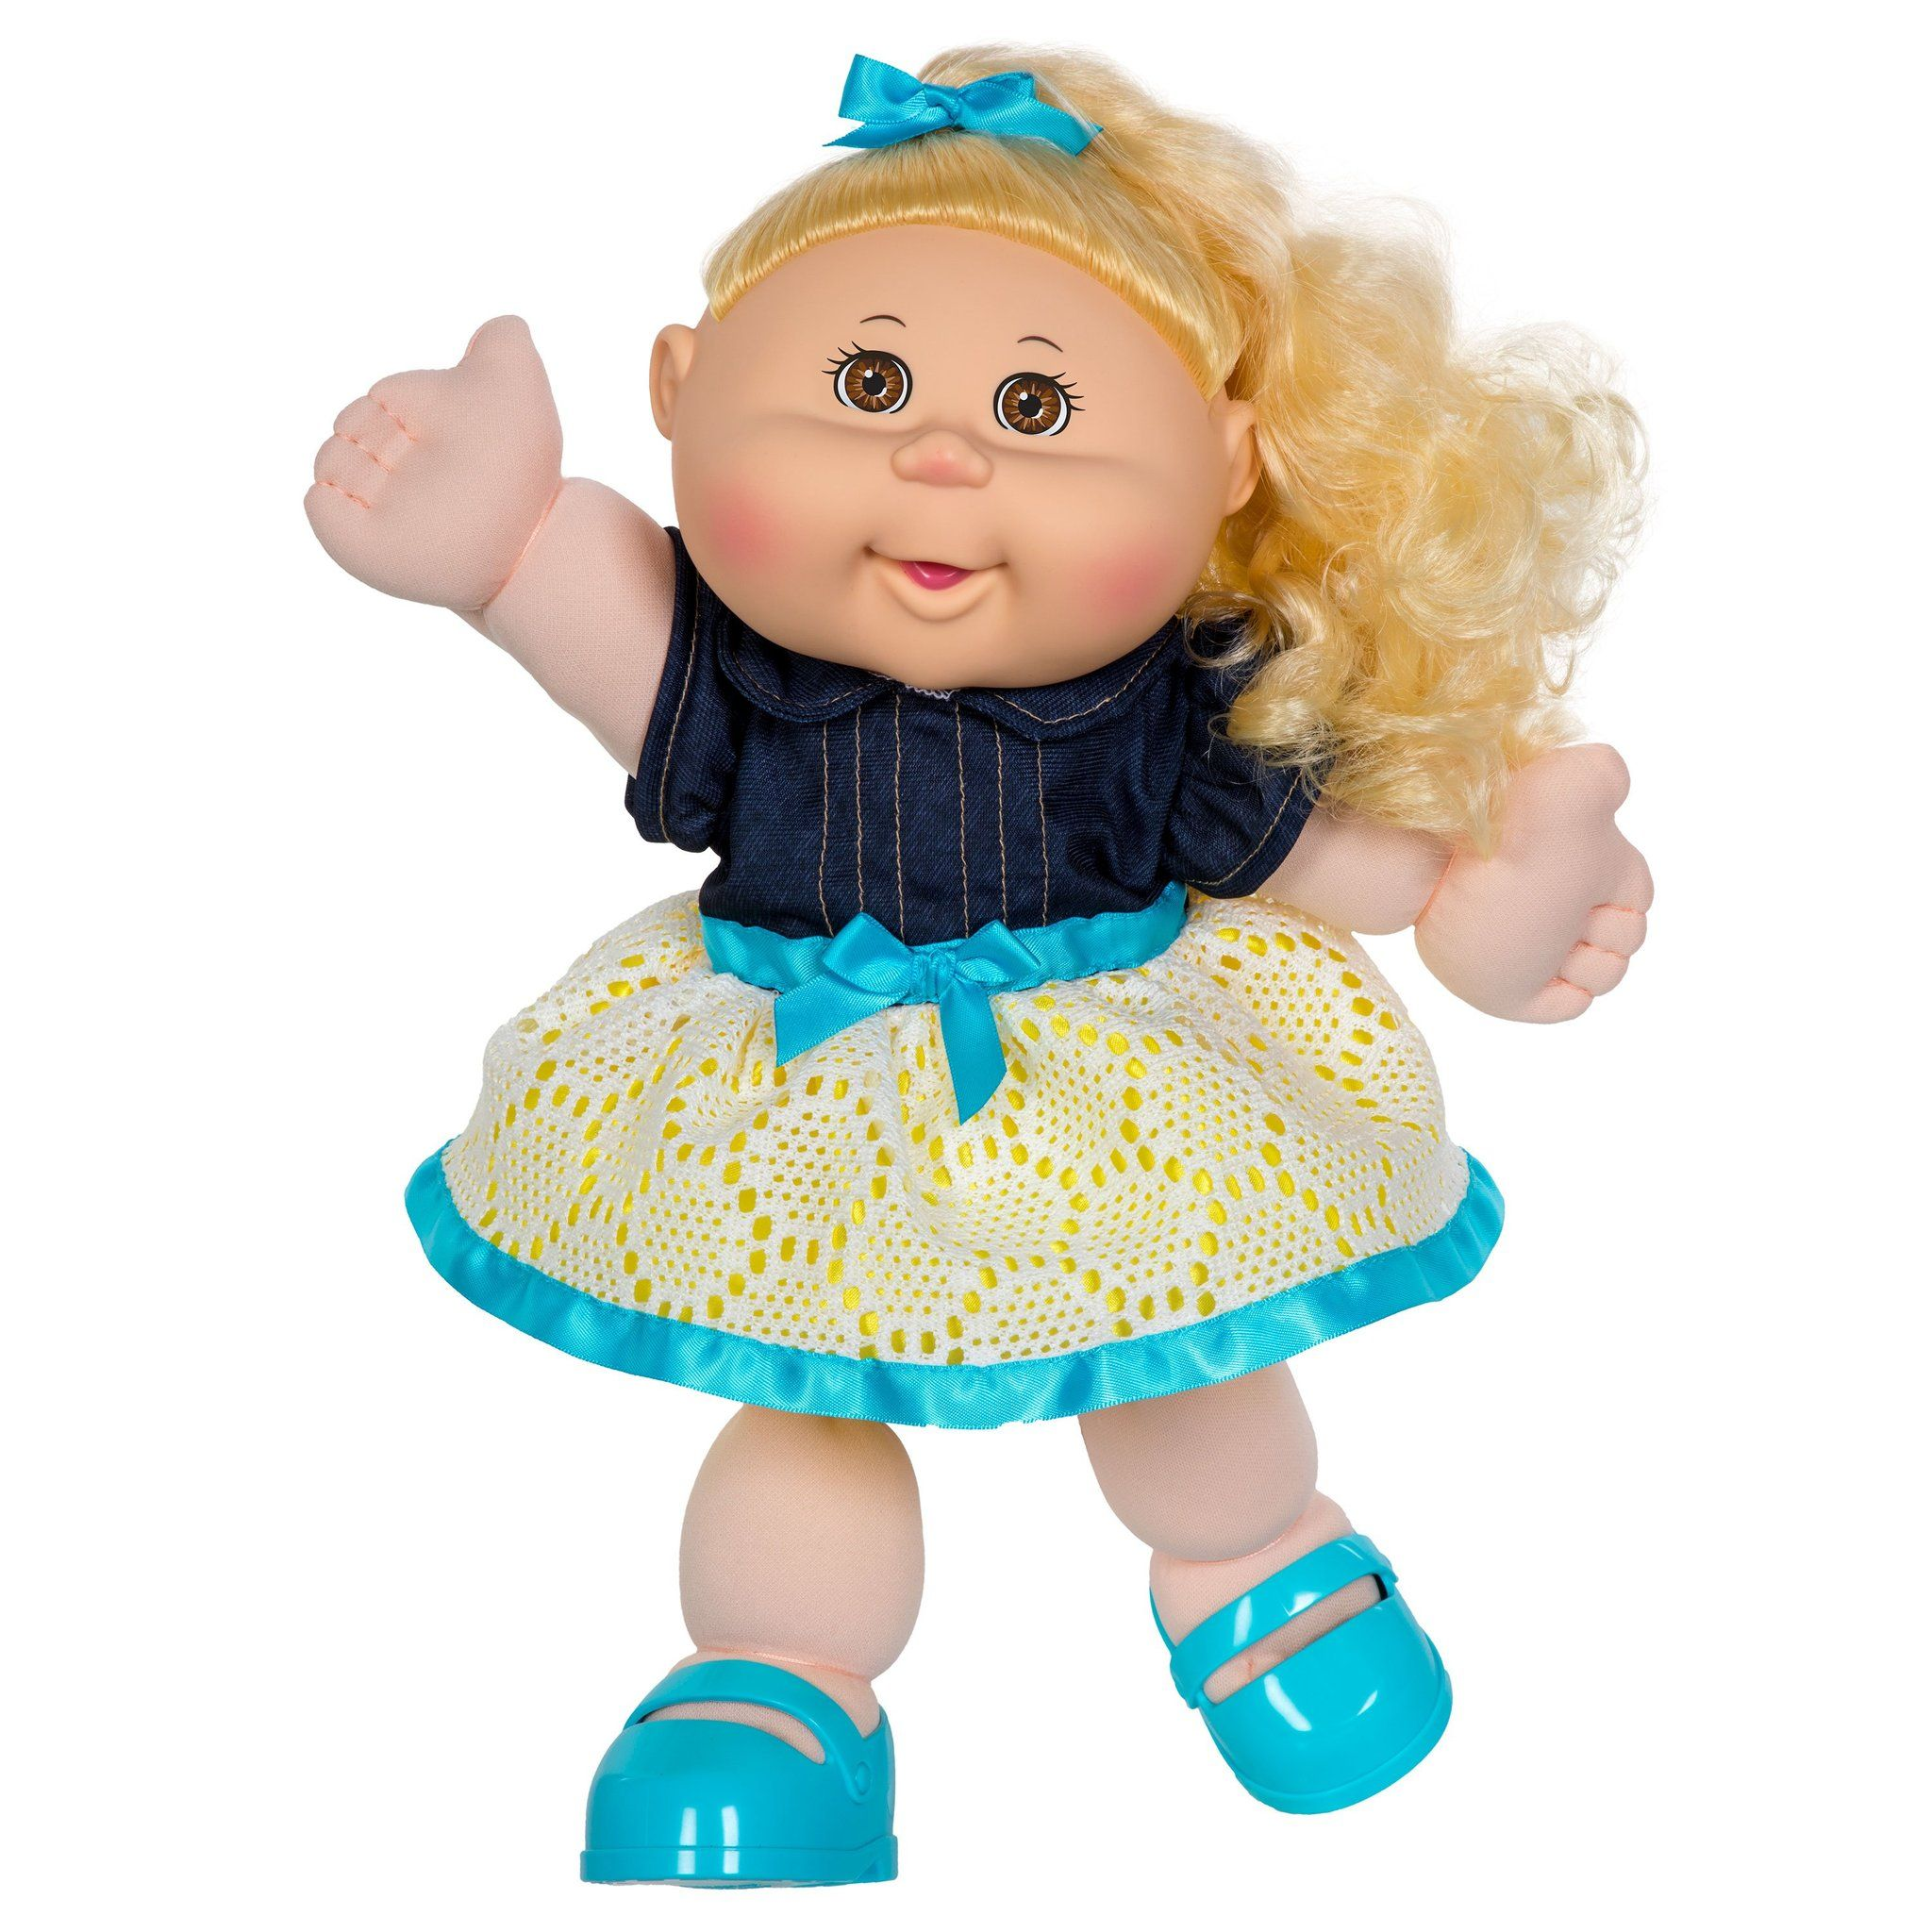 35th Anniversary 14 Inch Kid Cabbage Patch Kids Cabbage Patch Babies Cabbage Patch Kids Dolls Cabbage Patch Kids